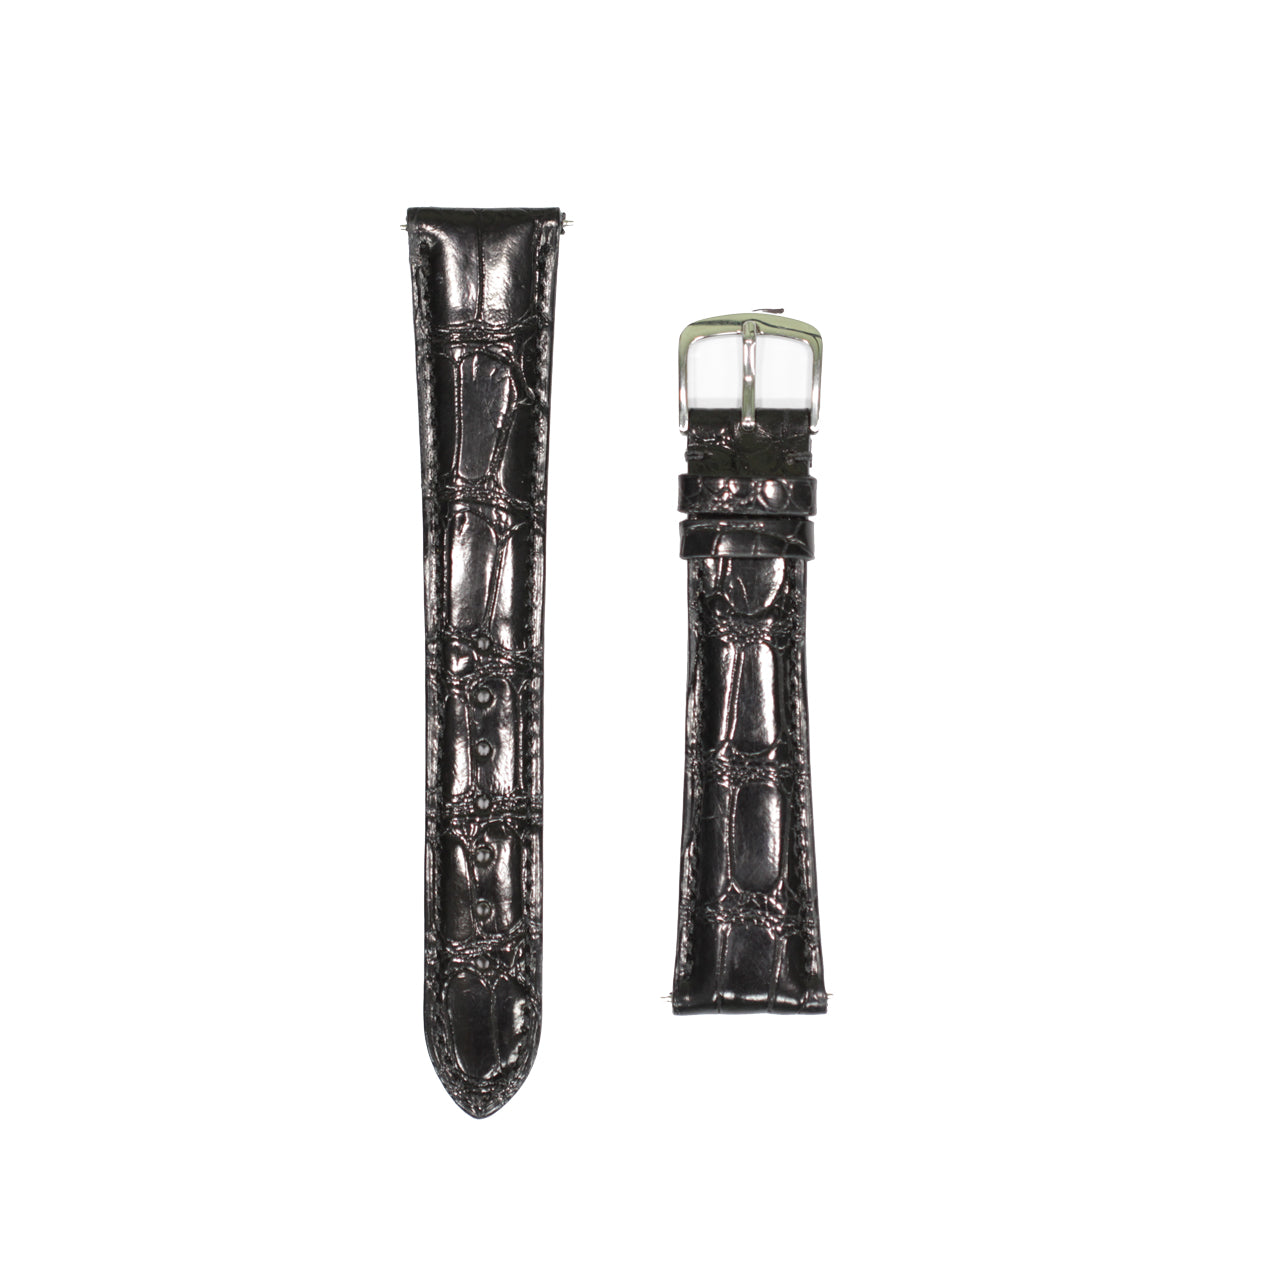 GMT Strap | Alligator | Black | Shiny | Long